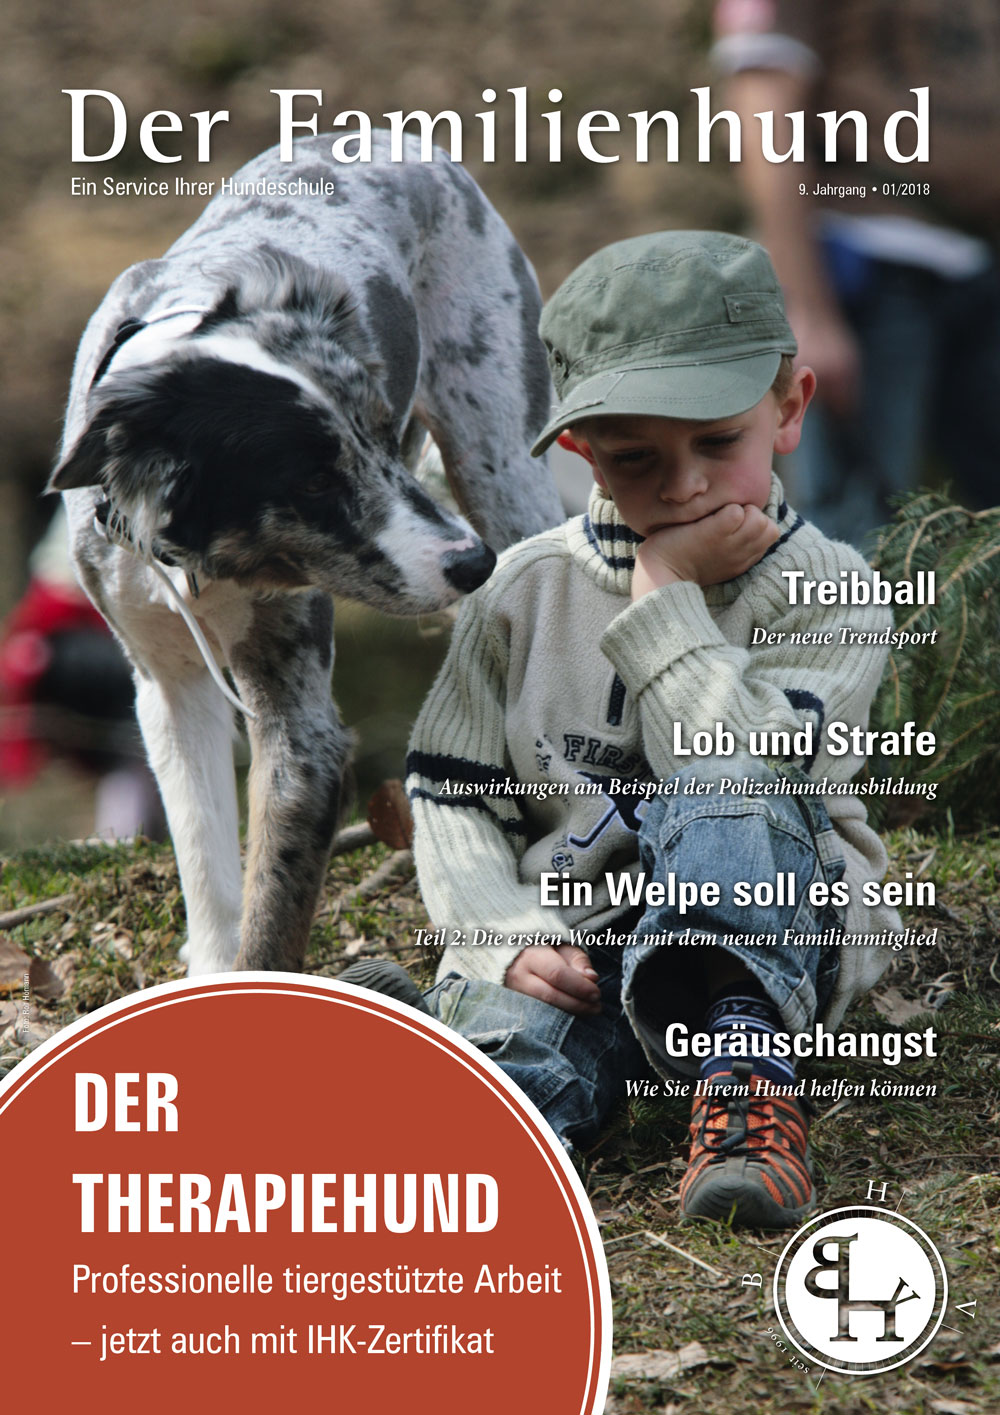 Familienhund01 2018 preview